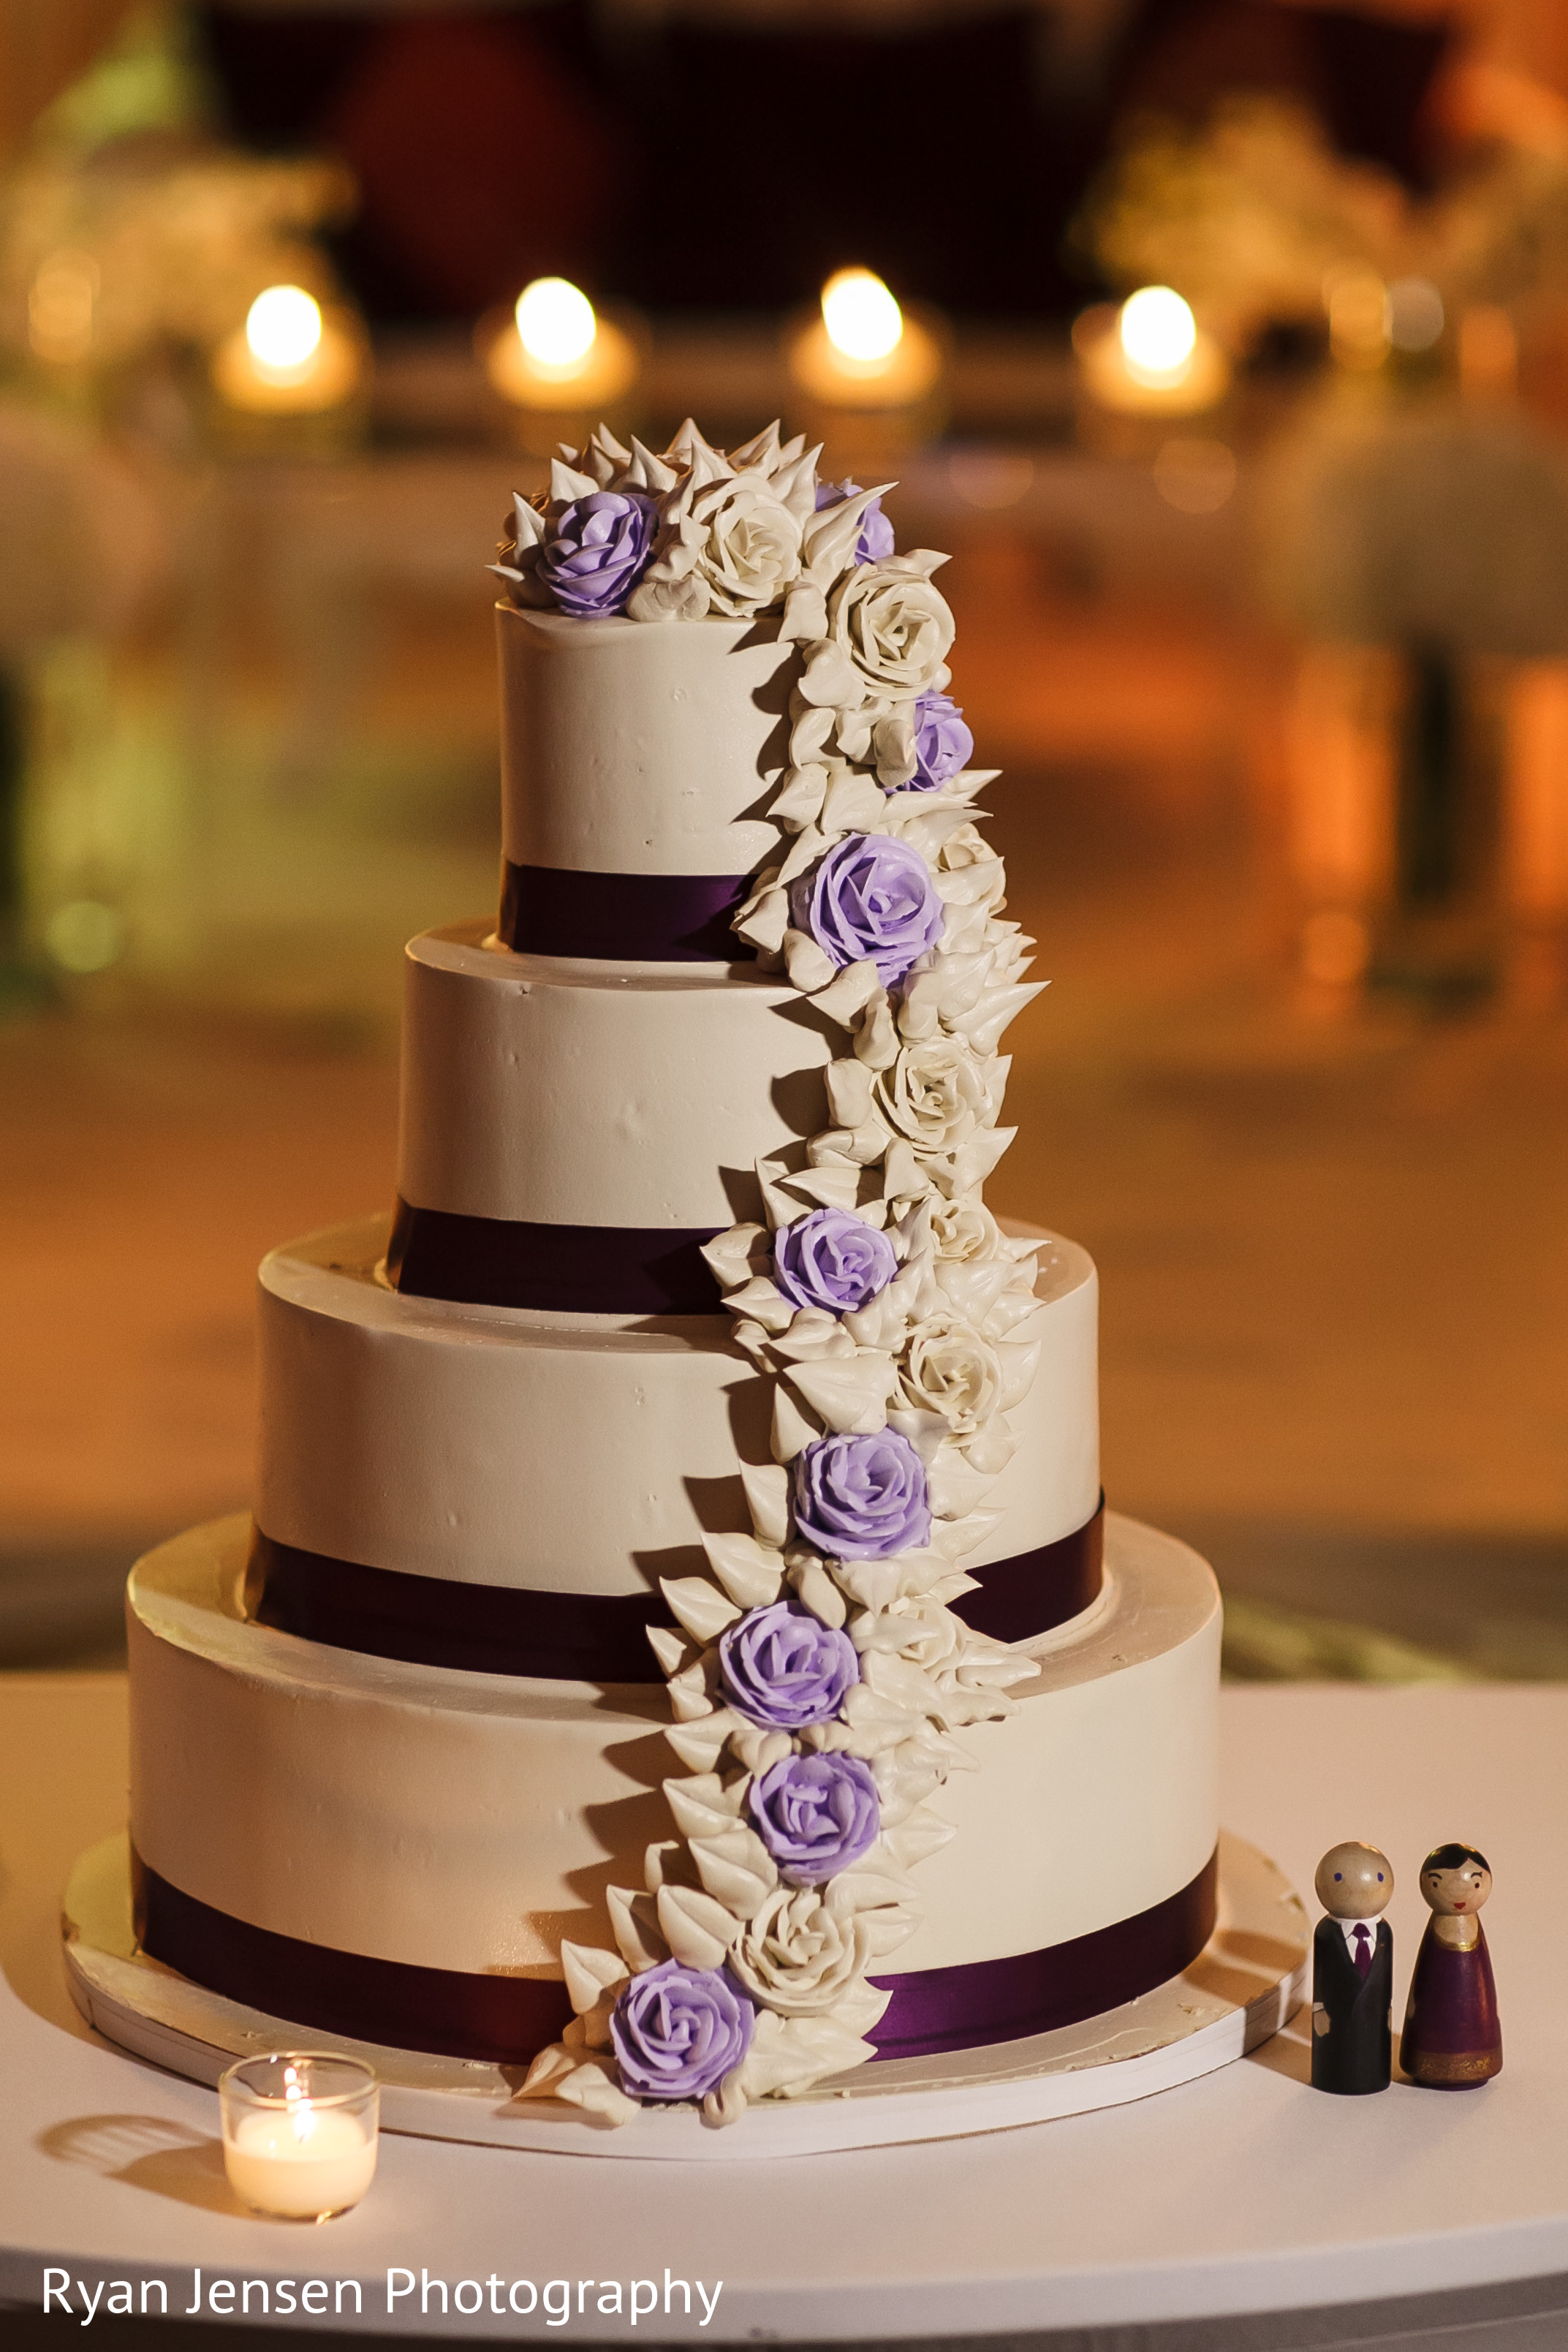 wedding cake brainerd mn cakes amp treats photo 22080 maharani weddings 22080